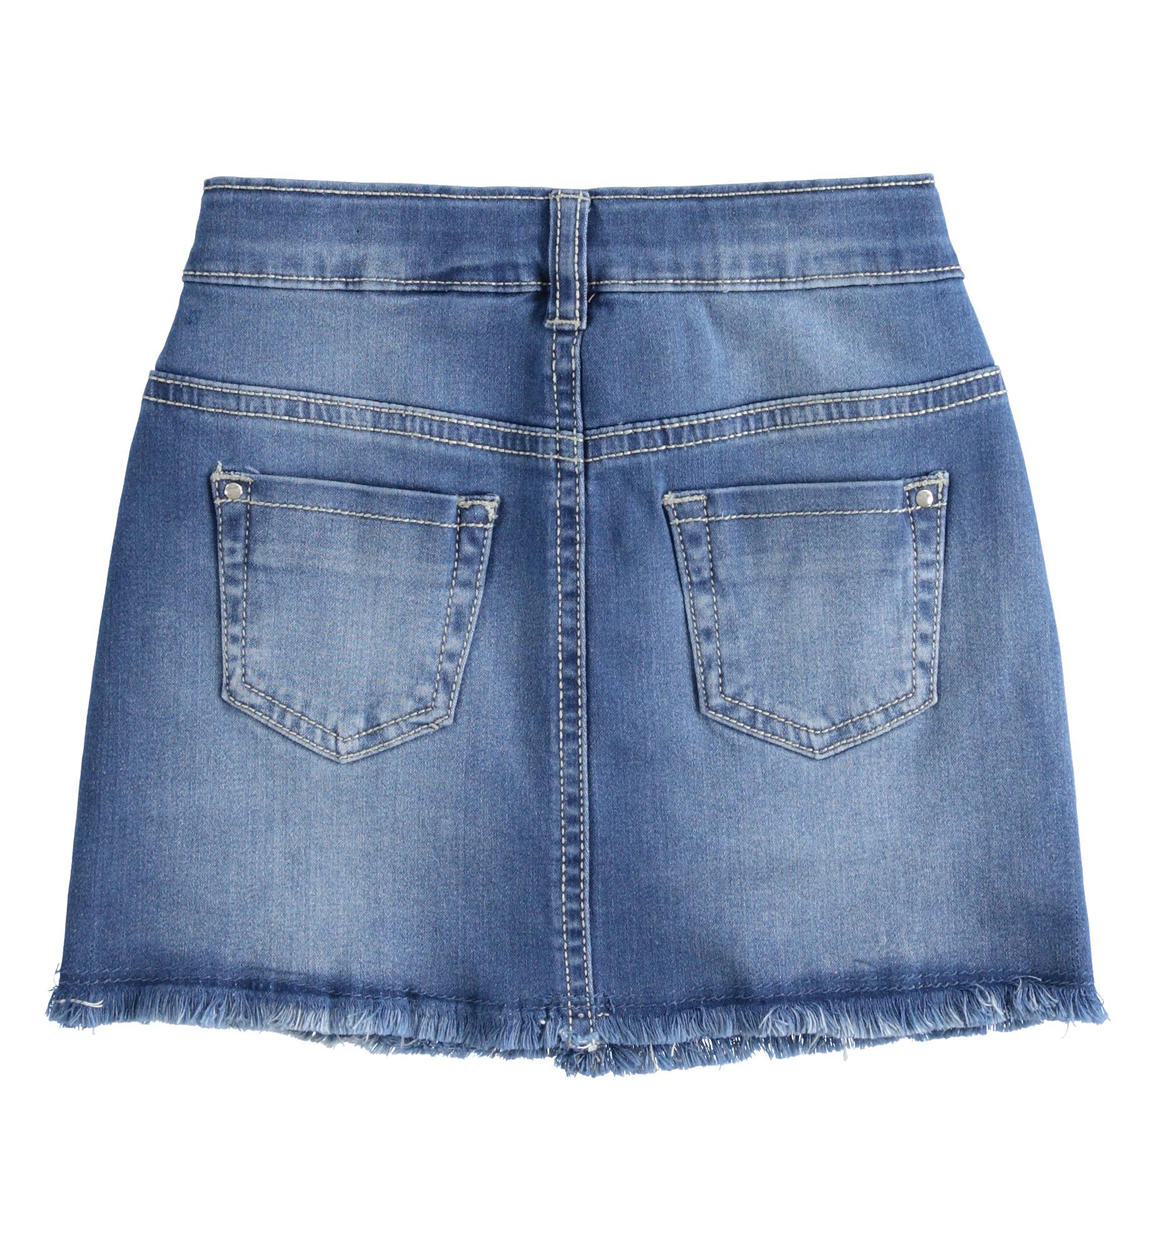 mini gonna in denim di cotone stretch co stone washed chiaro retro 02 2624j53100 7400 150x150